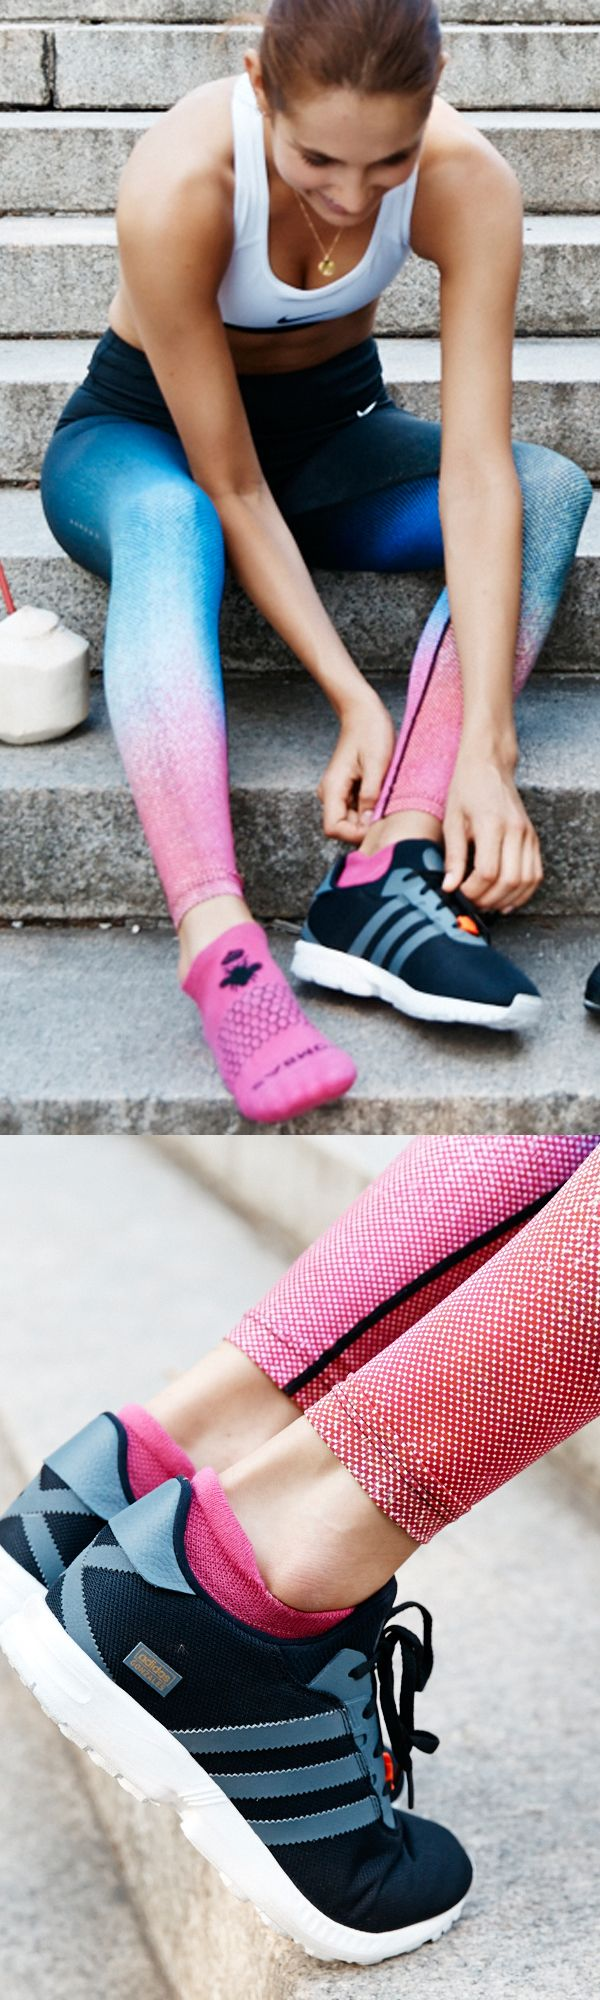 Whether you're the queen bee, a worker bee, or a busy bee, you need great socks to get you through the day. Quality materials and tested features make for the perfect socks to outfit the whole hive.  http://www.bombas.com/women?filter=5&utm_source=Pinterest&utm_medium=Social&utm_campaign=7.6P